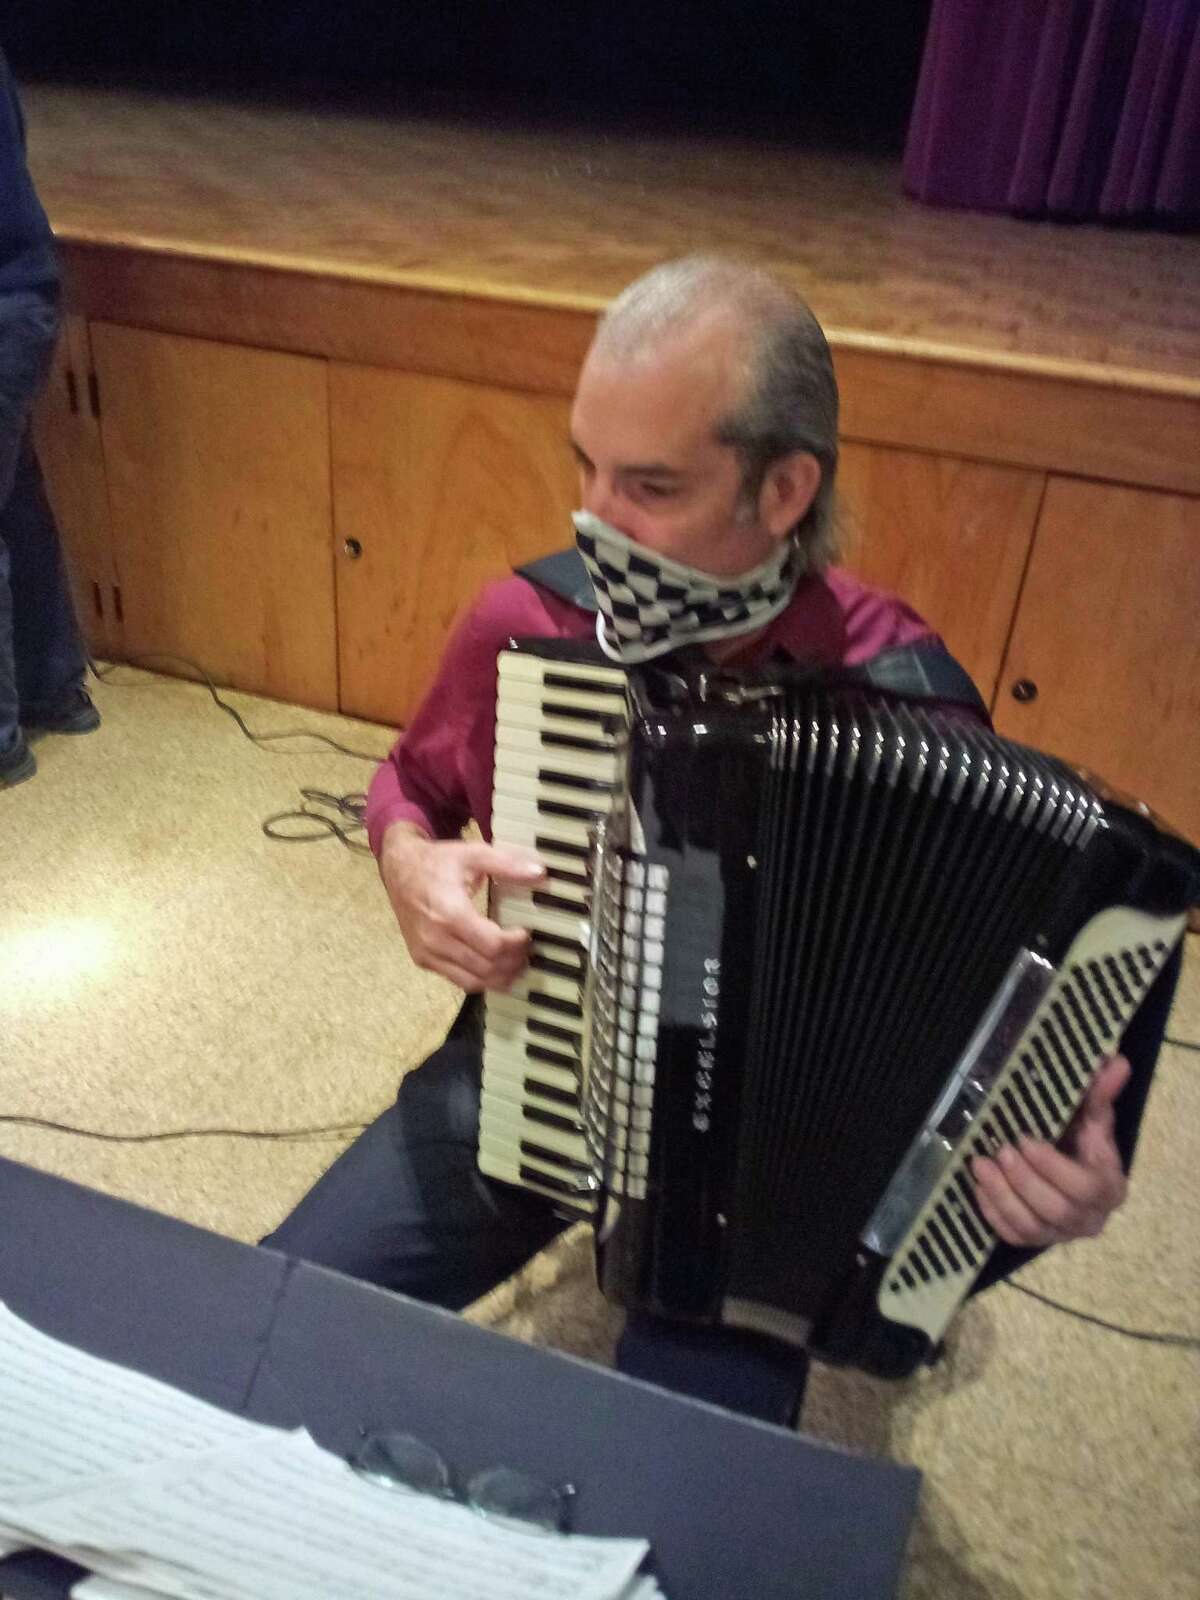 Torrington resident Marie Soliani was named the city's Italian Mayor of the Day Monday, during a ceremony at Coe Memorial Park's Civic Center. Above, Chris Cogliano plays the accordion at the celebration.